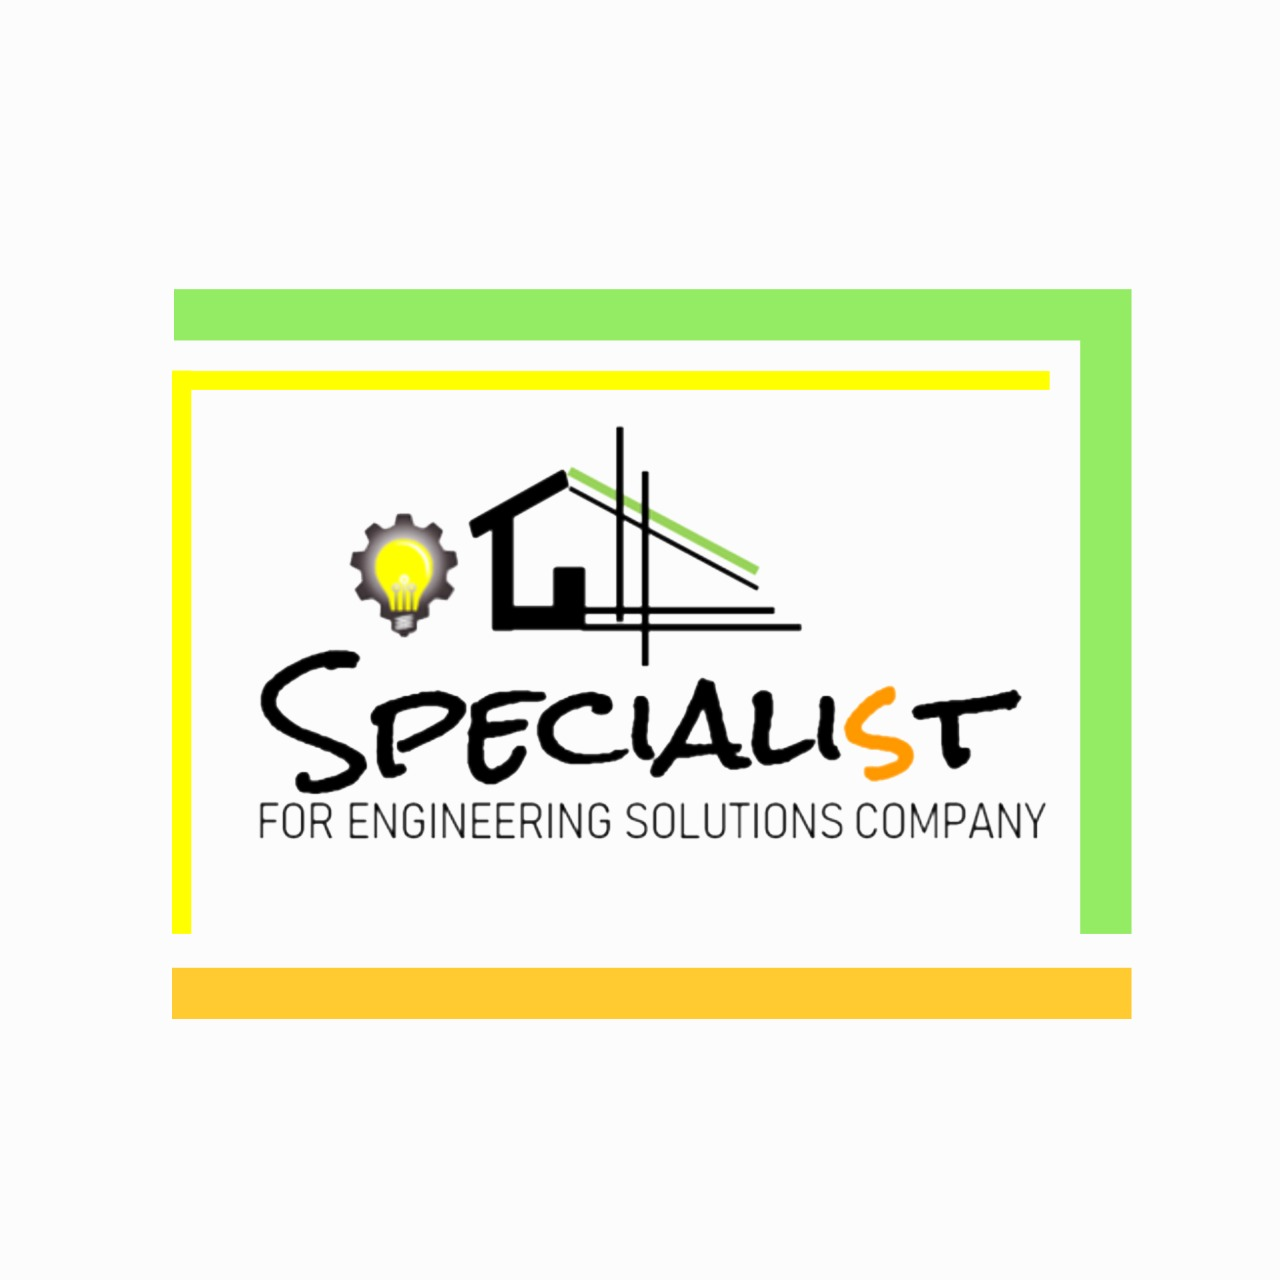 Specialist for Engineering Solutions